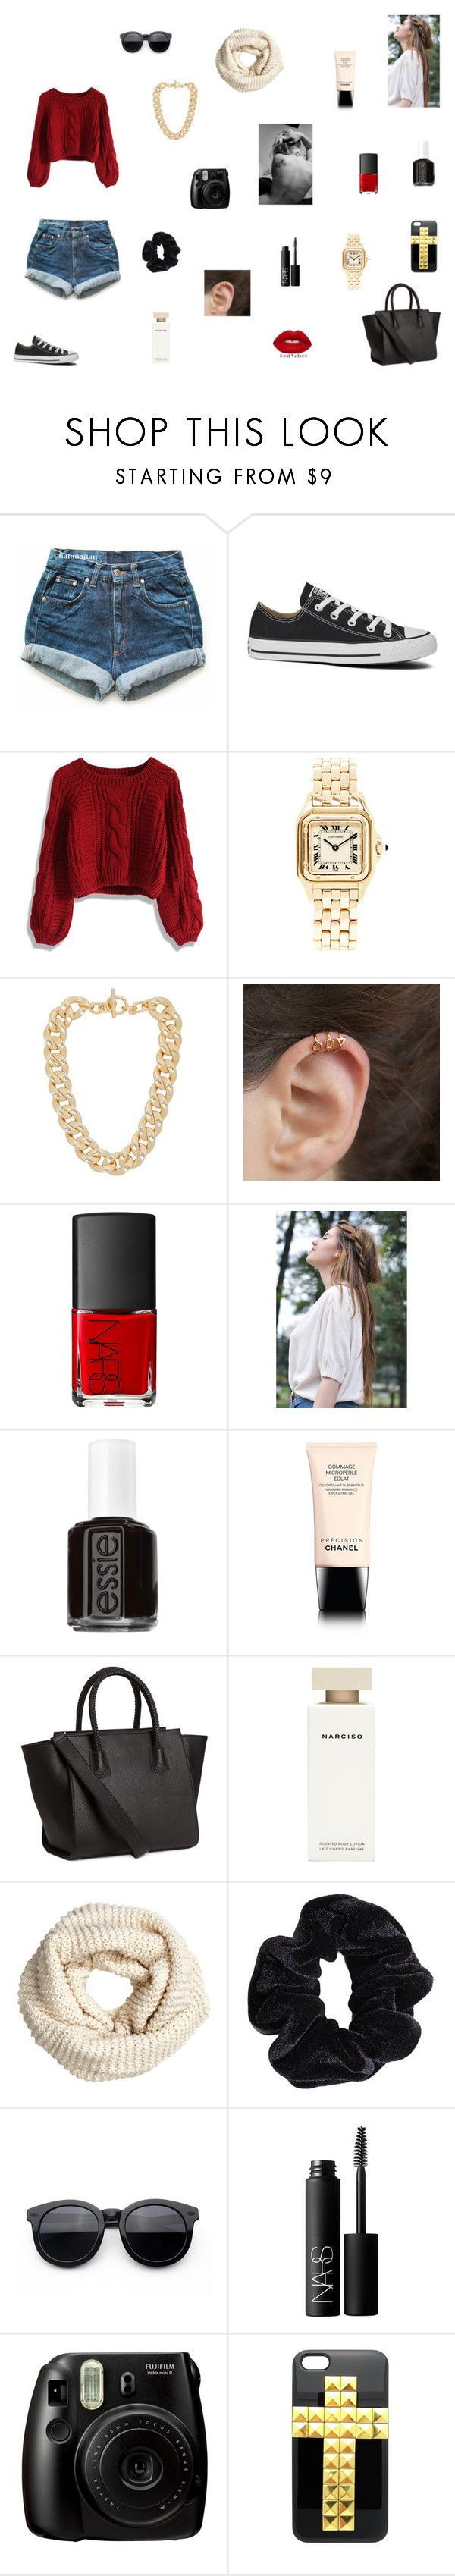 """Bbhjbjhhbugbugb"" by camila-aljustrel-2002 ❤ liked on Polyvore featuring Levi's, Converse, Chicwish, Michael Kors, NARS Cosmetics, Lime Crime, Essie, Chanel, H&M and Narciso Rodriguez"